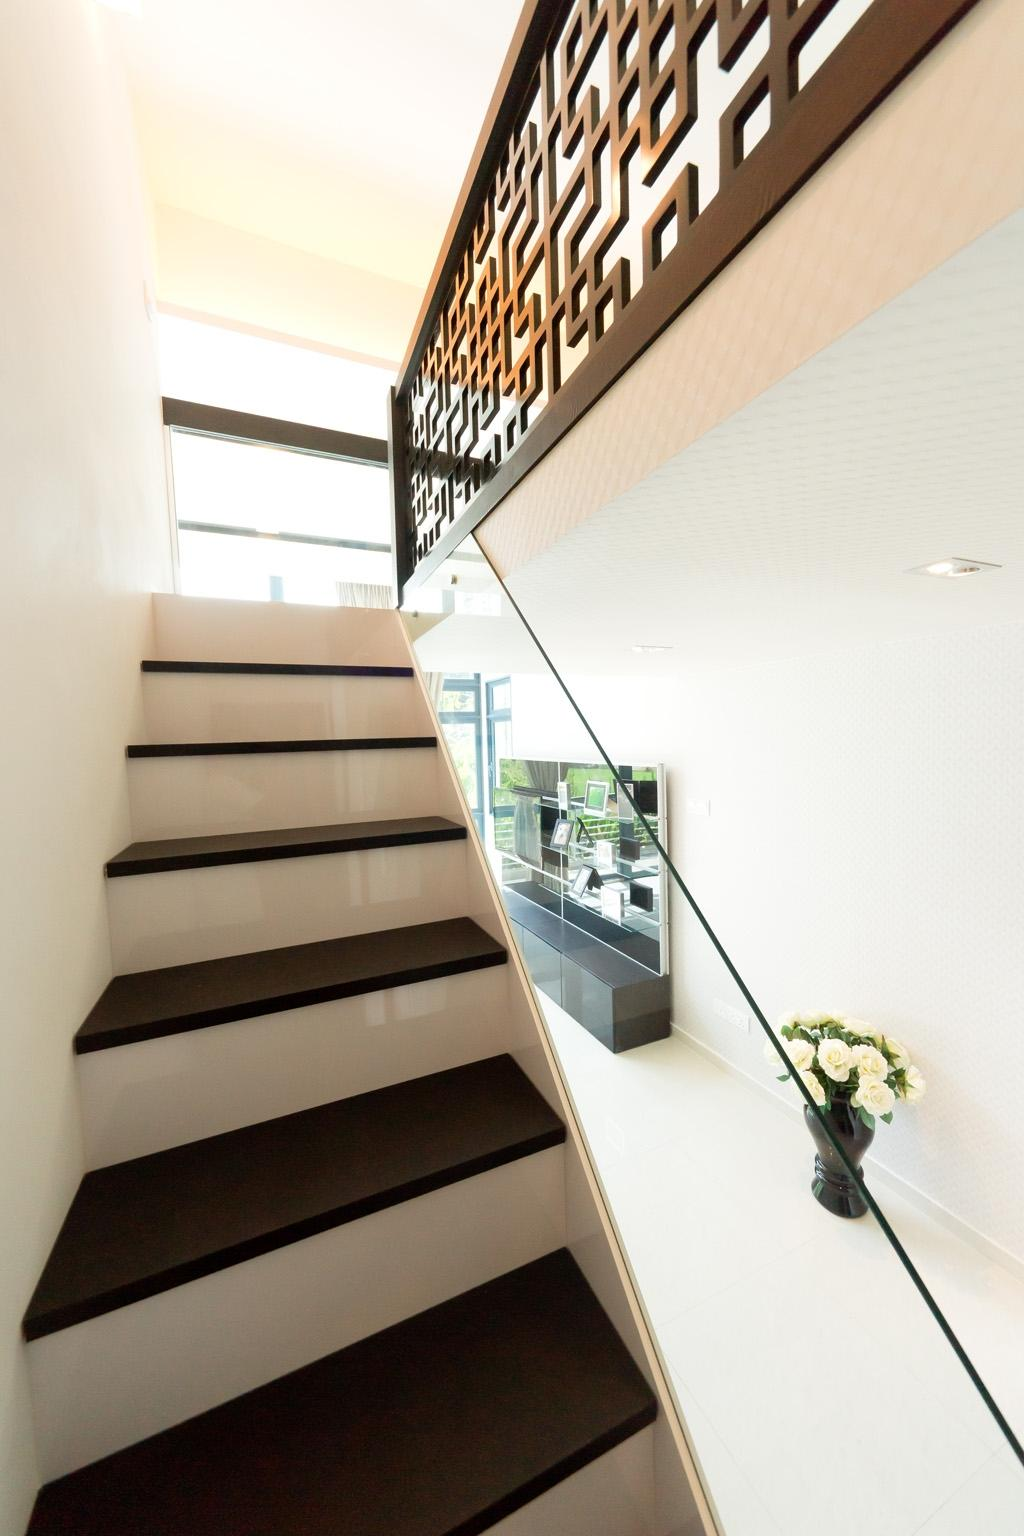 Transitional, Condo, City Square Residences, Interior Designer, Unity ID, Stairs, Staircase, Glass Railing, Railing, Handrails, White